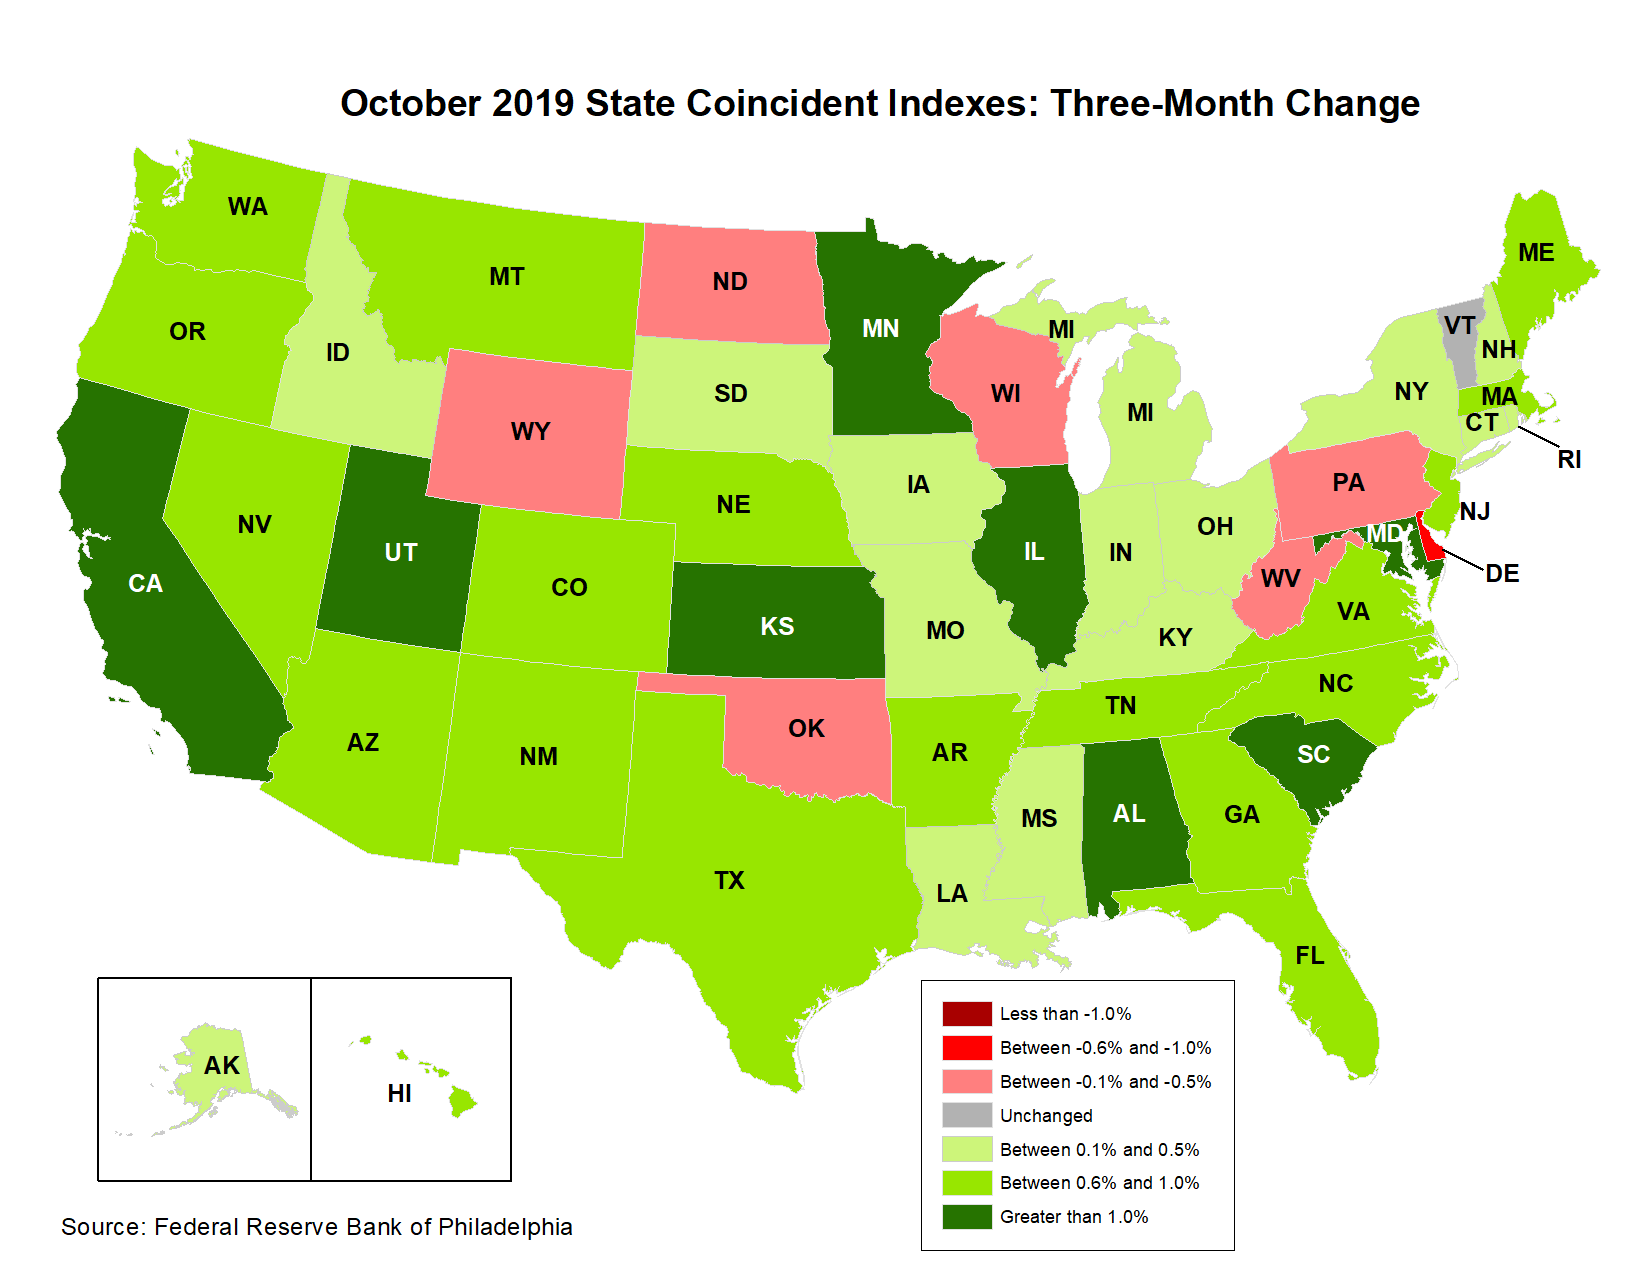 Map of the U.S. showing the State Coincident Indexes Three-Month Change in October 2019